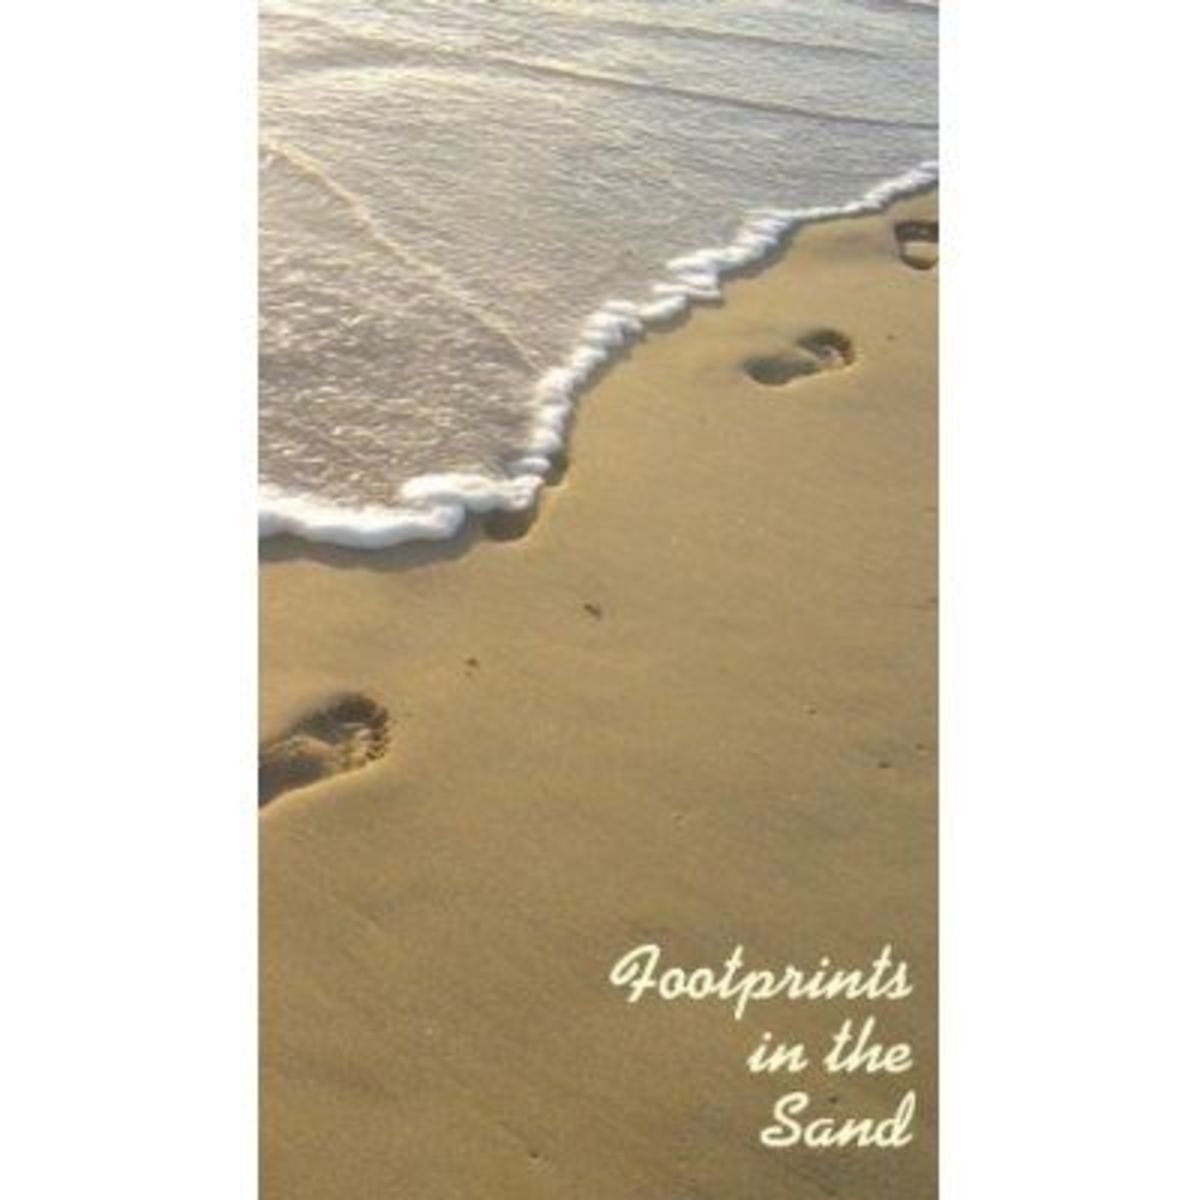 Buy Footprints in the Sand Wallet Size Cards